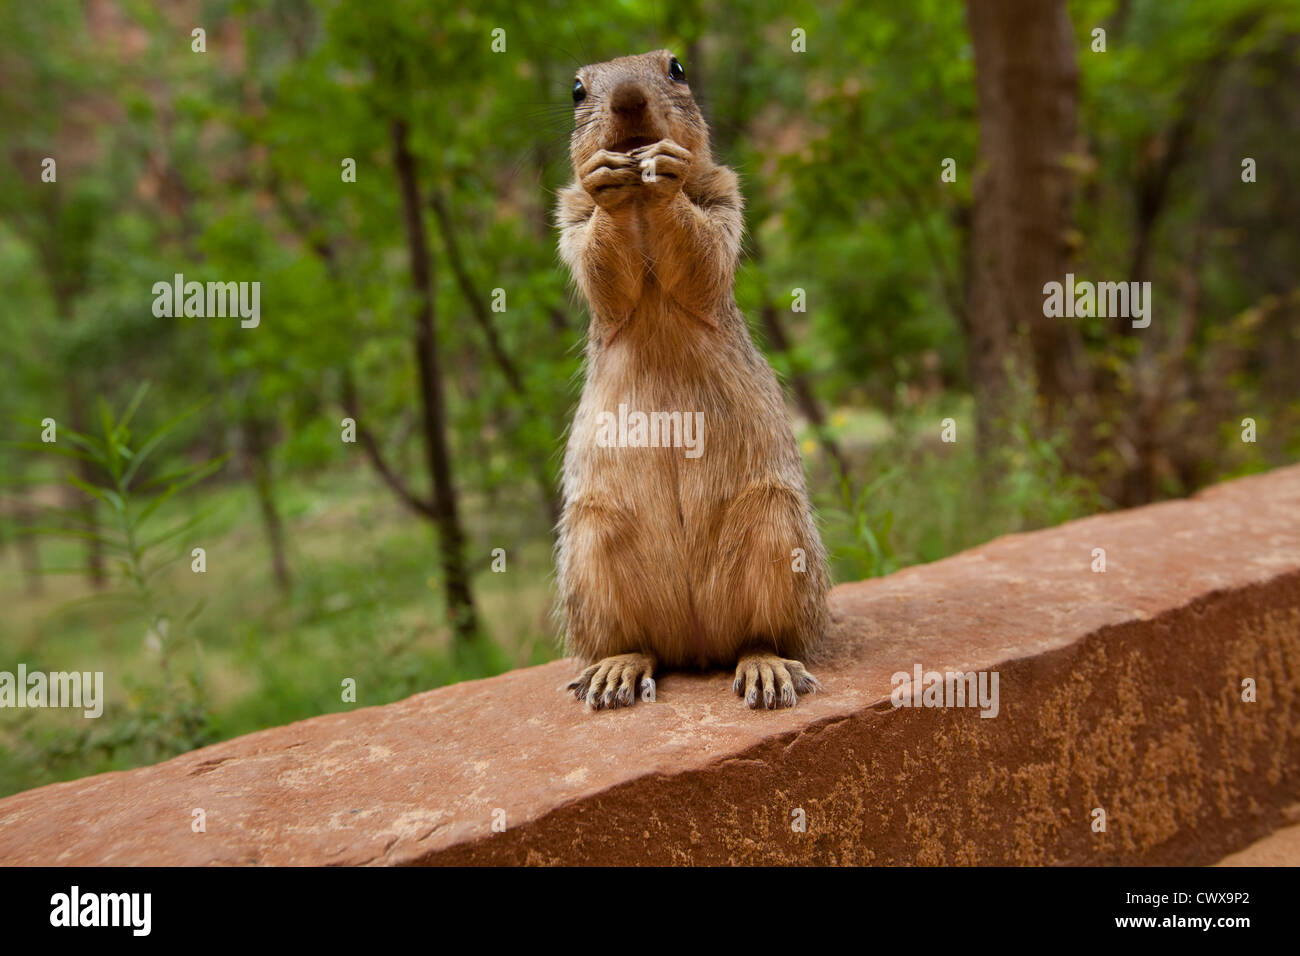 Squirrel, Zion Canyon National Park, Utah, United States of America - Stock Image